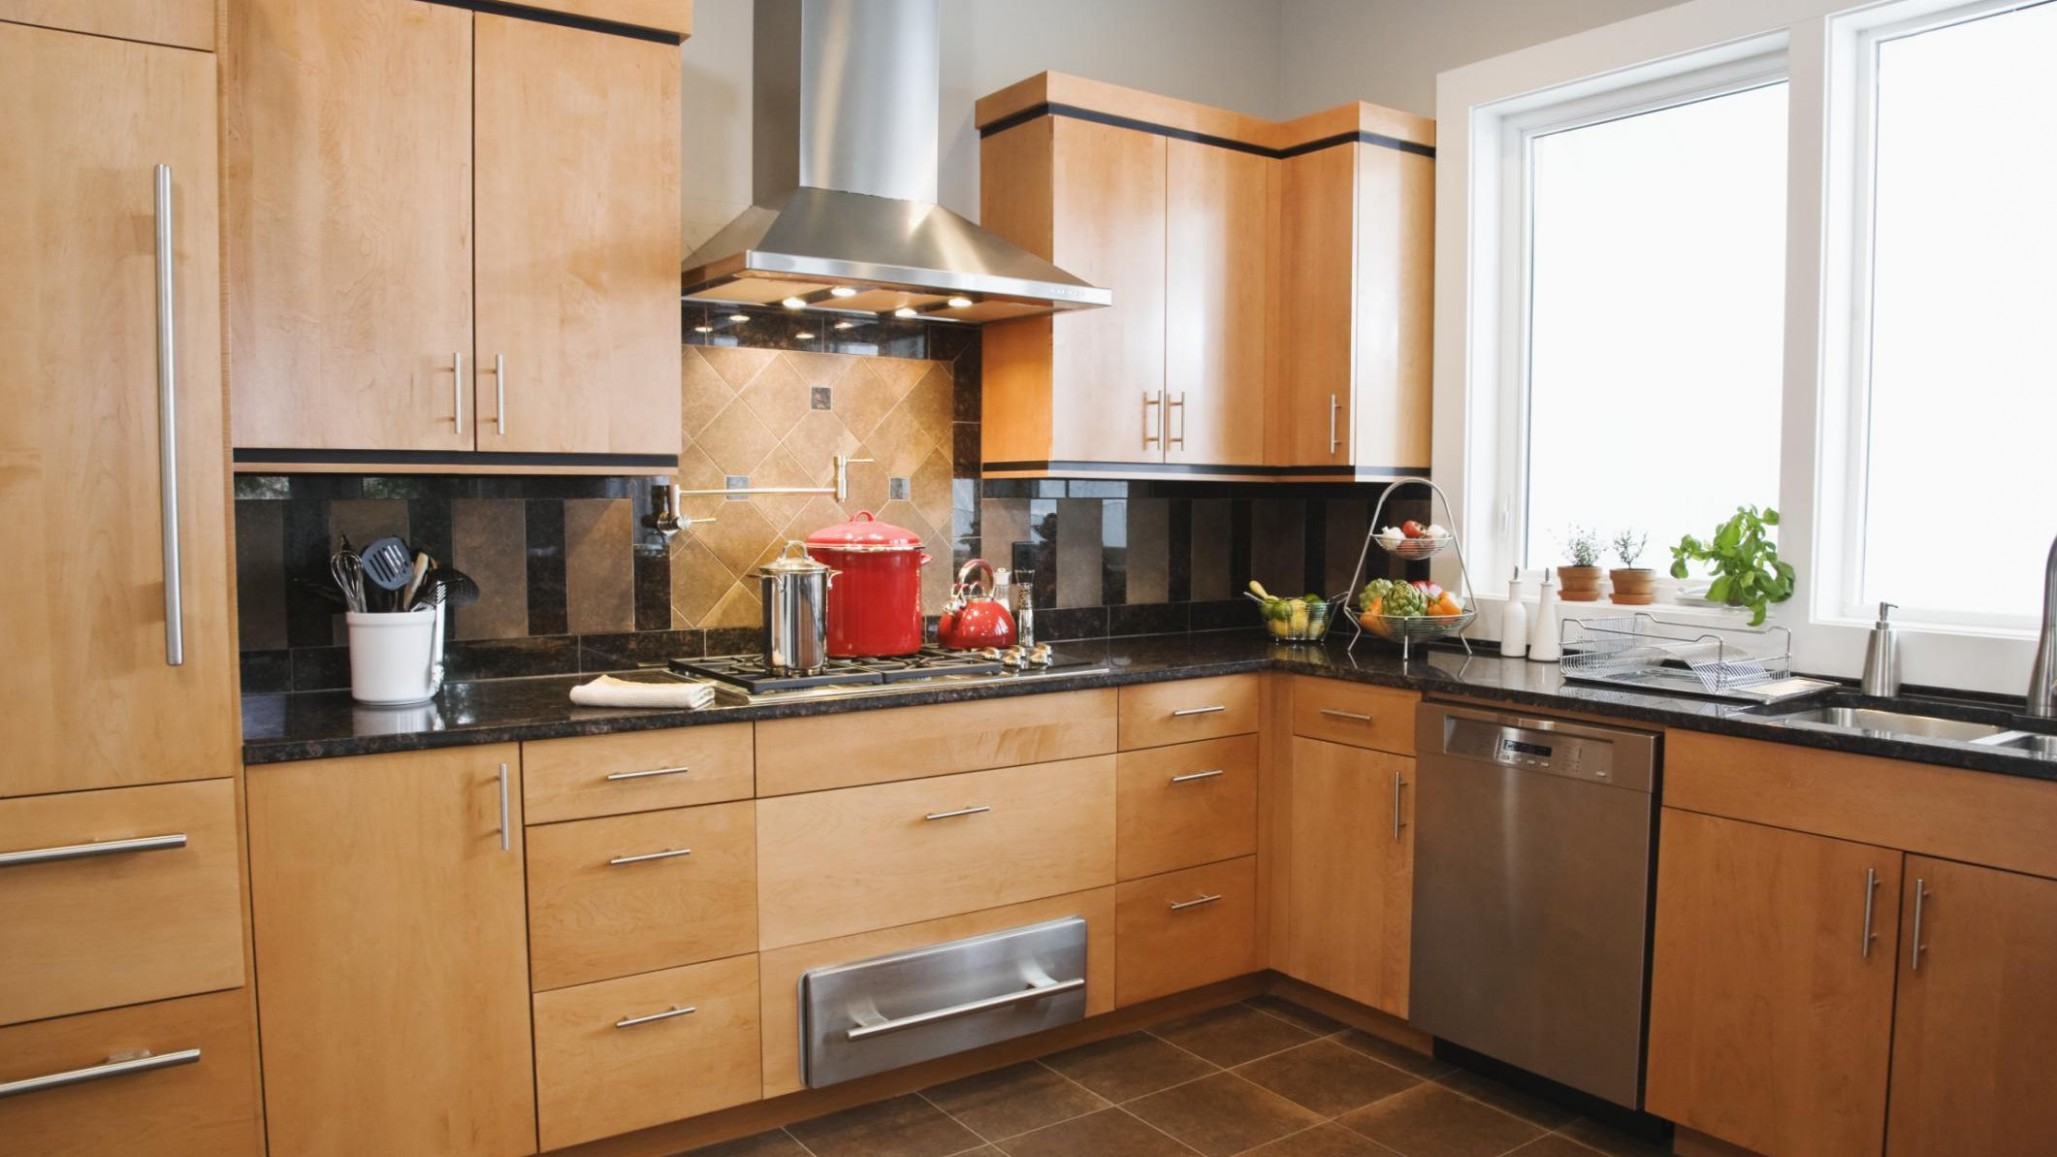 Optimal Kitchen Upper Cabinet Height - Standard Height For Kitchen Cabinets Above Counter